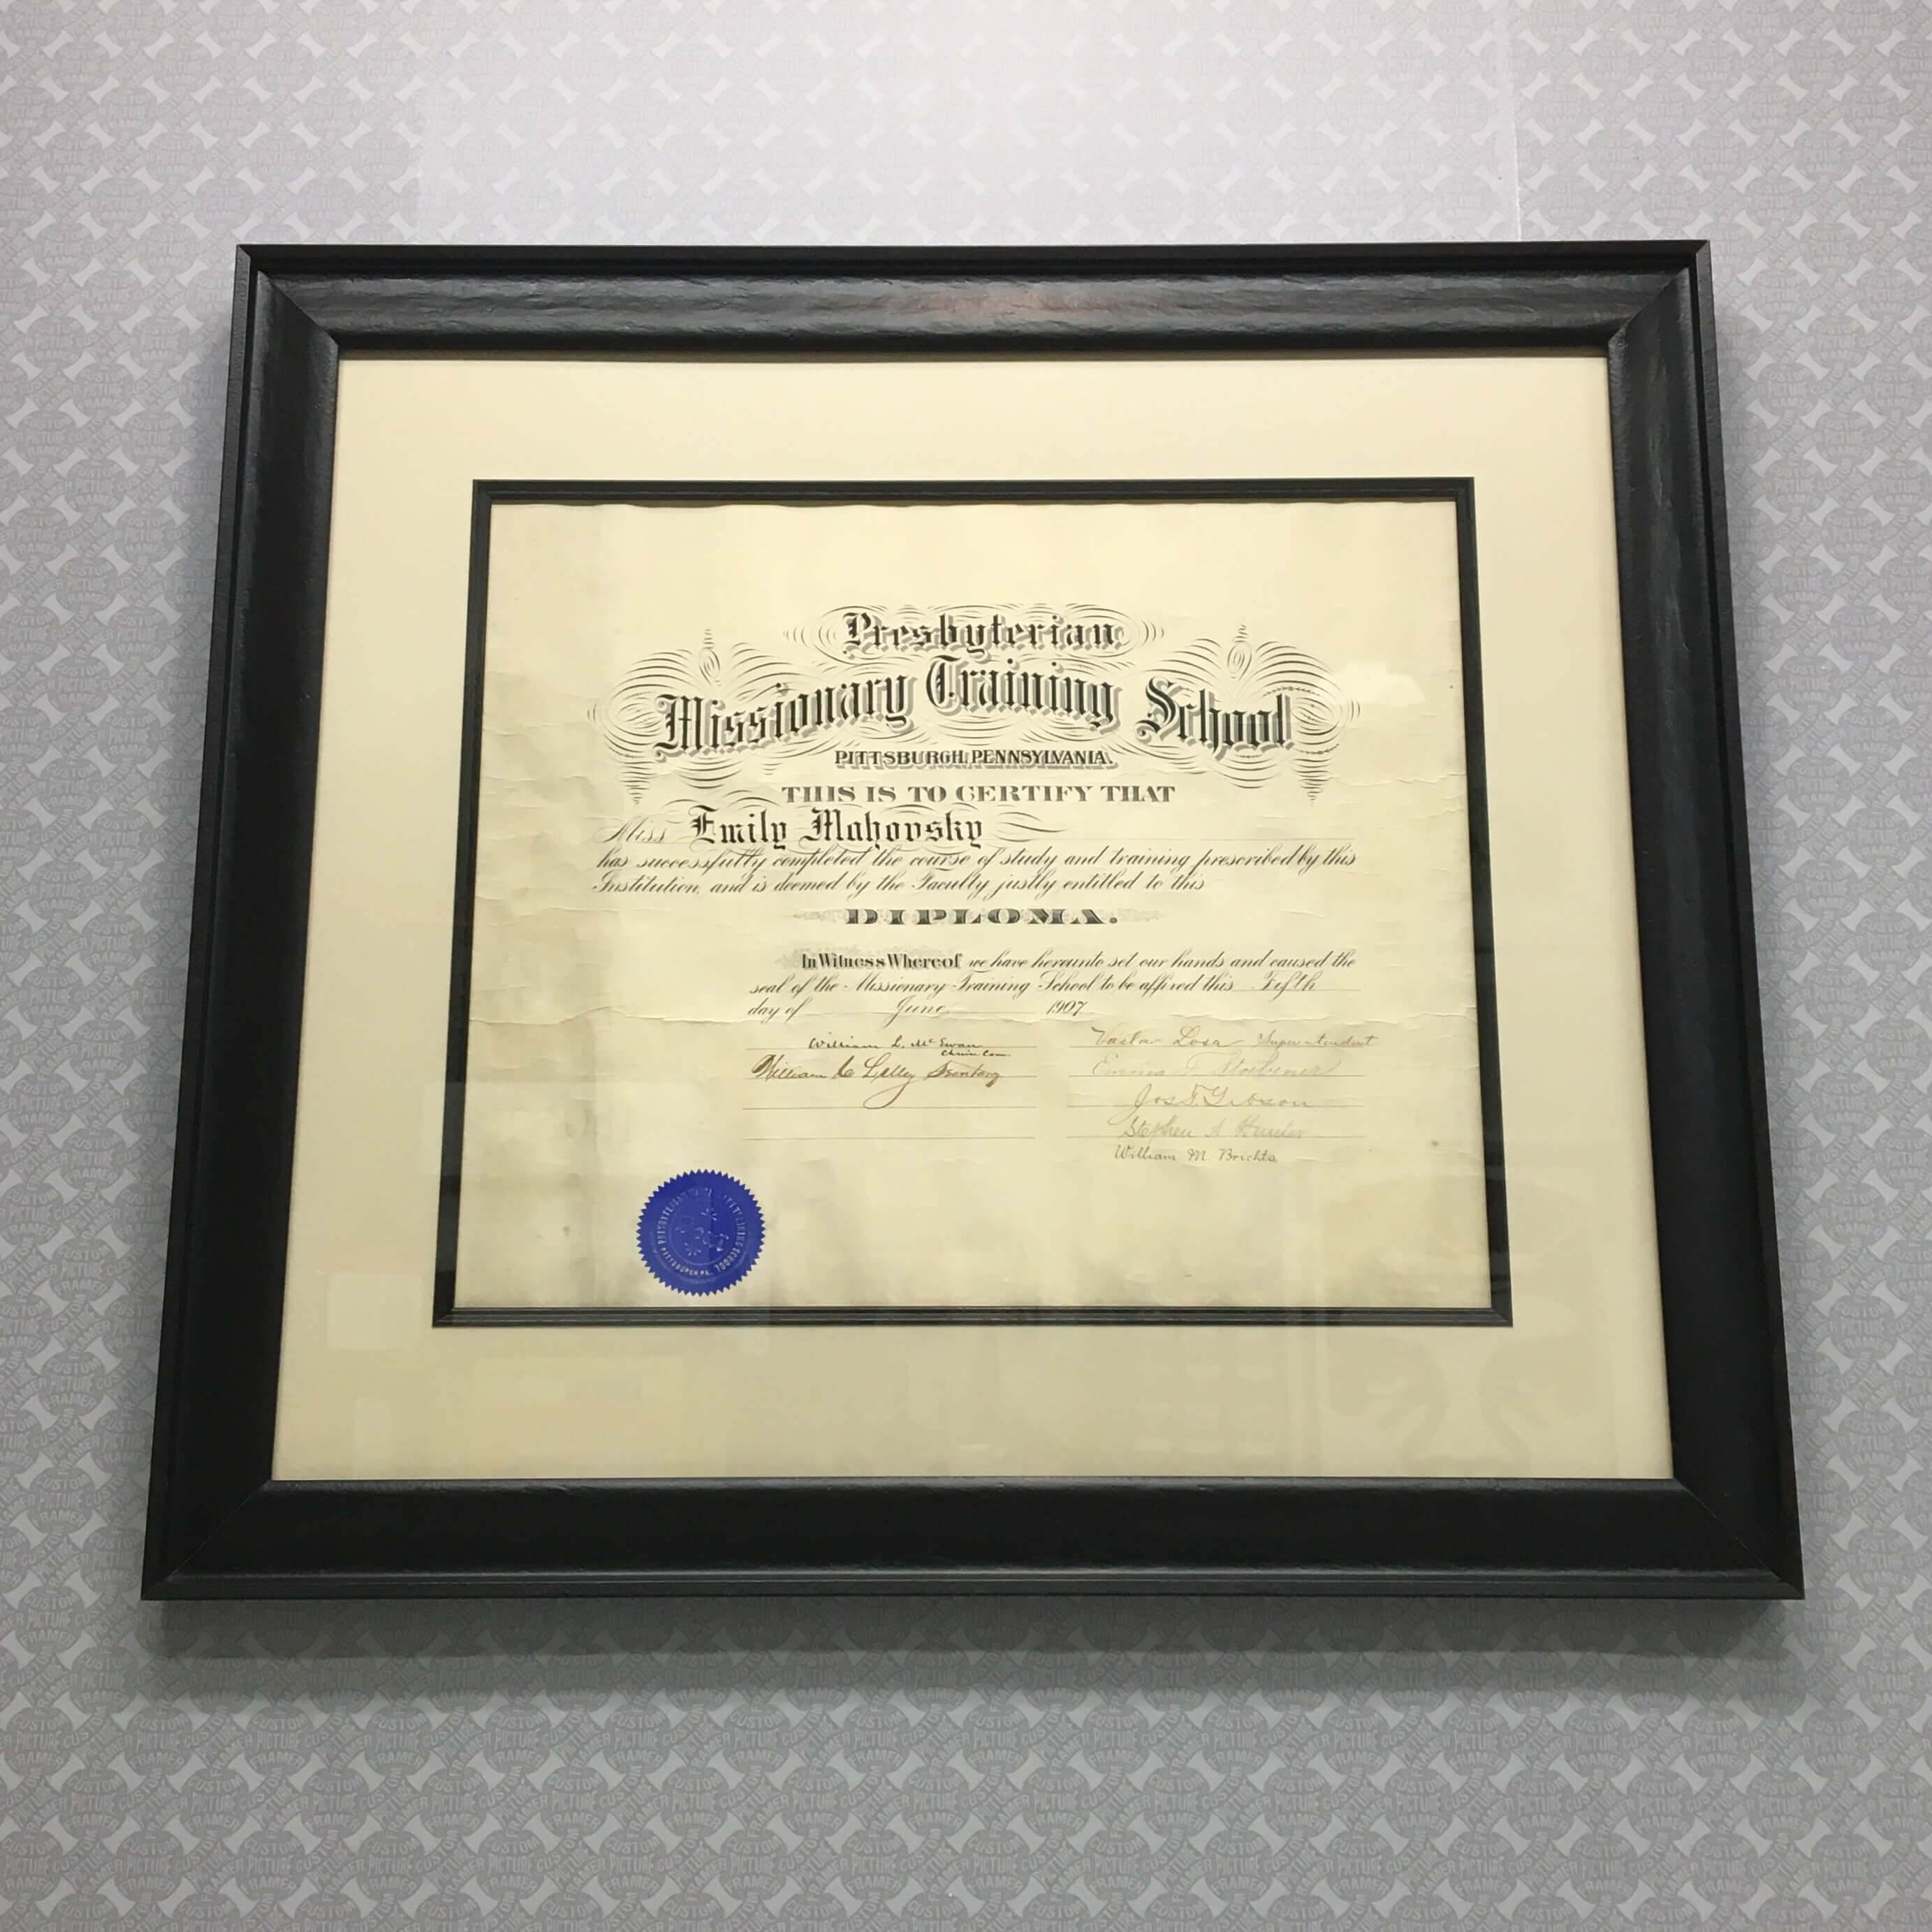 Whether it's from 2007 or 1907, isn't it time to FINALLY get that diploma framed? See more custom framing options at our Keswick Village showroom just north of Philadelphia in Glenside PA ( Pennsylvania ) , 19038 . Custom Picture Framer of Glenside carries thousands of frame styles, prints, maps, limited editions, mirrors, and more!